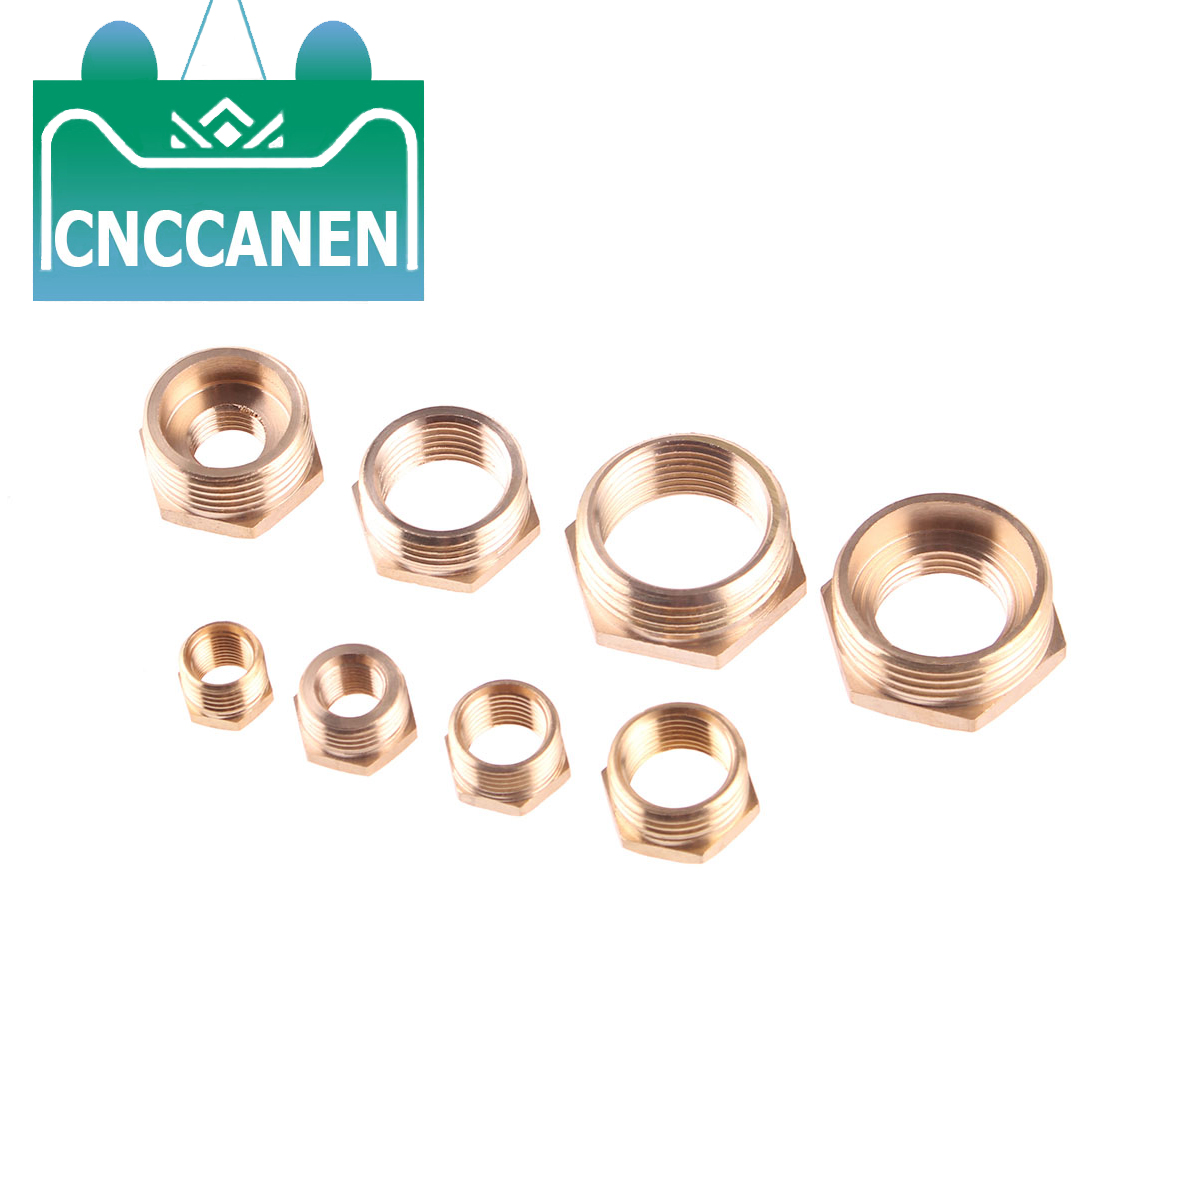 "Brass Hex Reducer Bushing M/F 1/8"" 1/4"" 3/8"" 1/2"" 3/4"" 1"" BSP Male To Female Reducing Bush Coupler Connector Adapter Fitting"